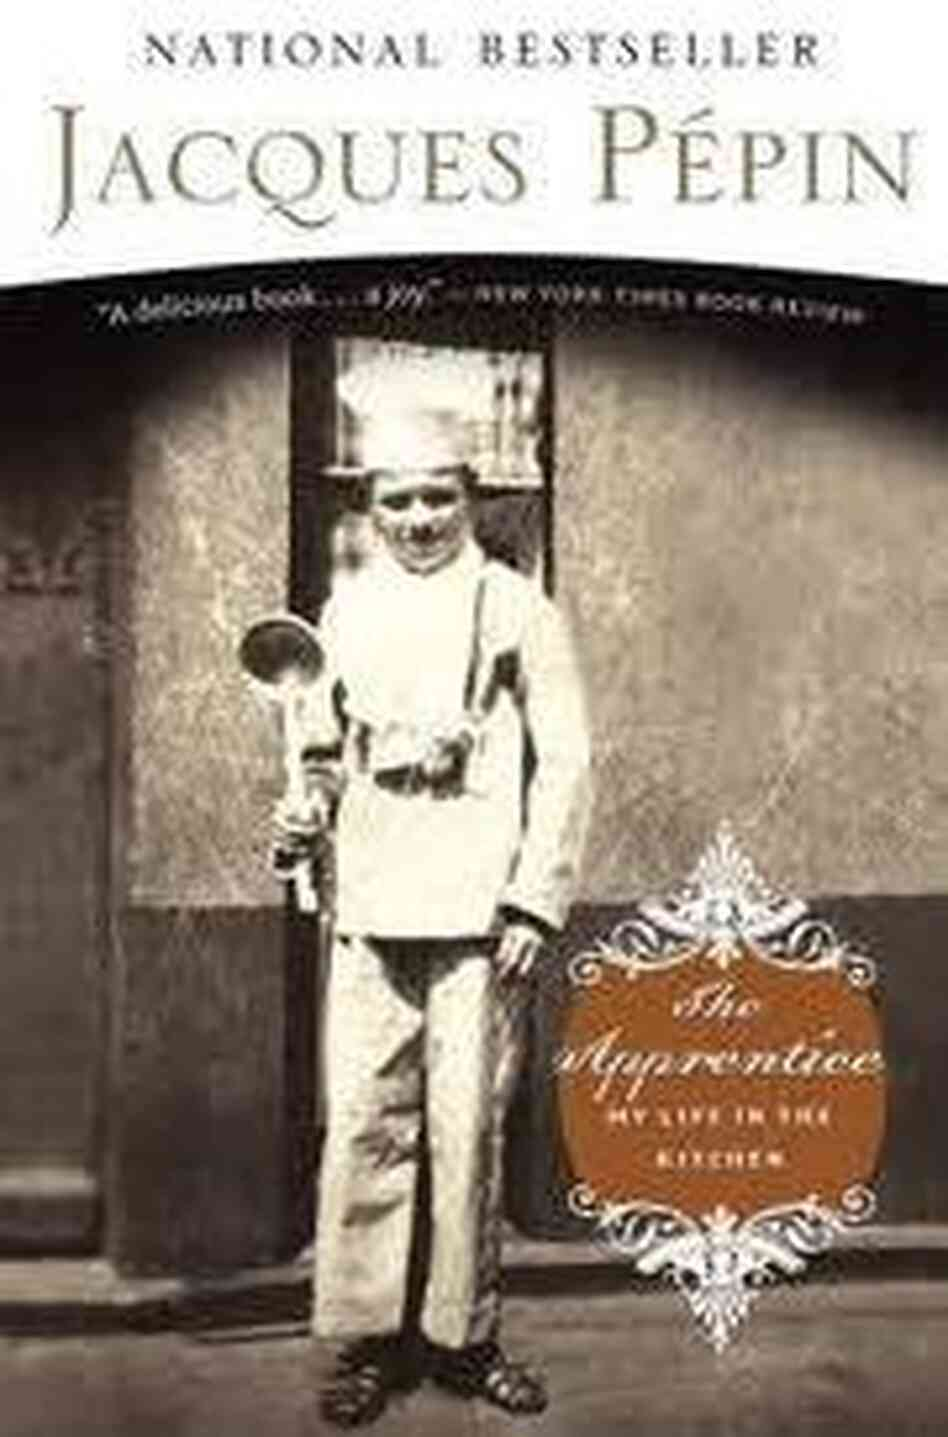 Cover of 'The Apprentice' by Jacques Pepin.